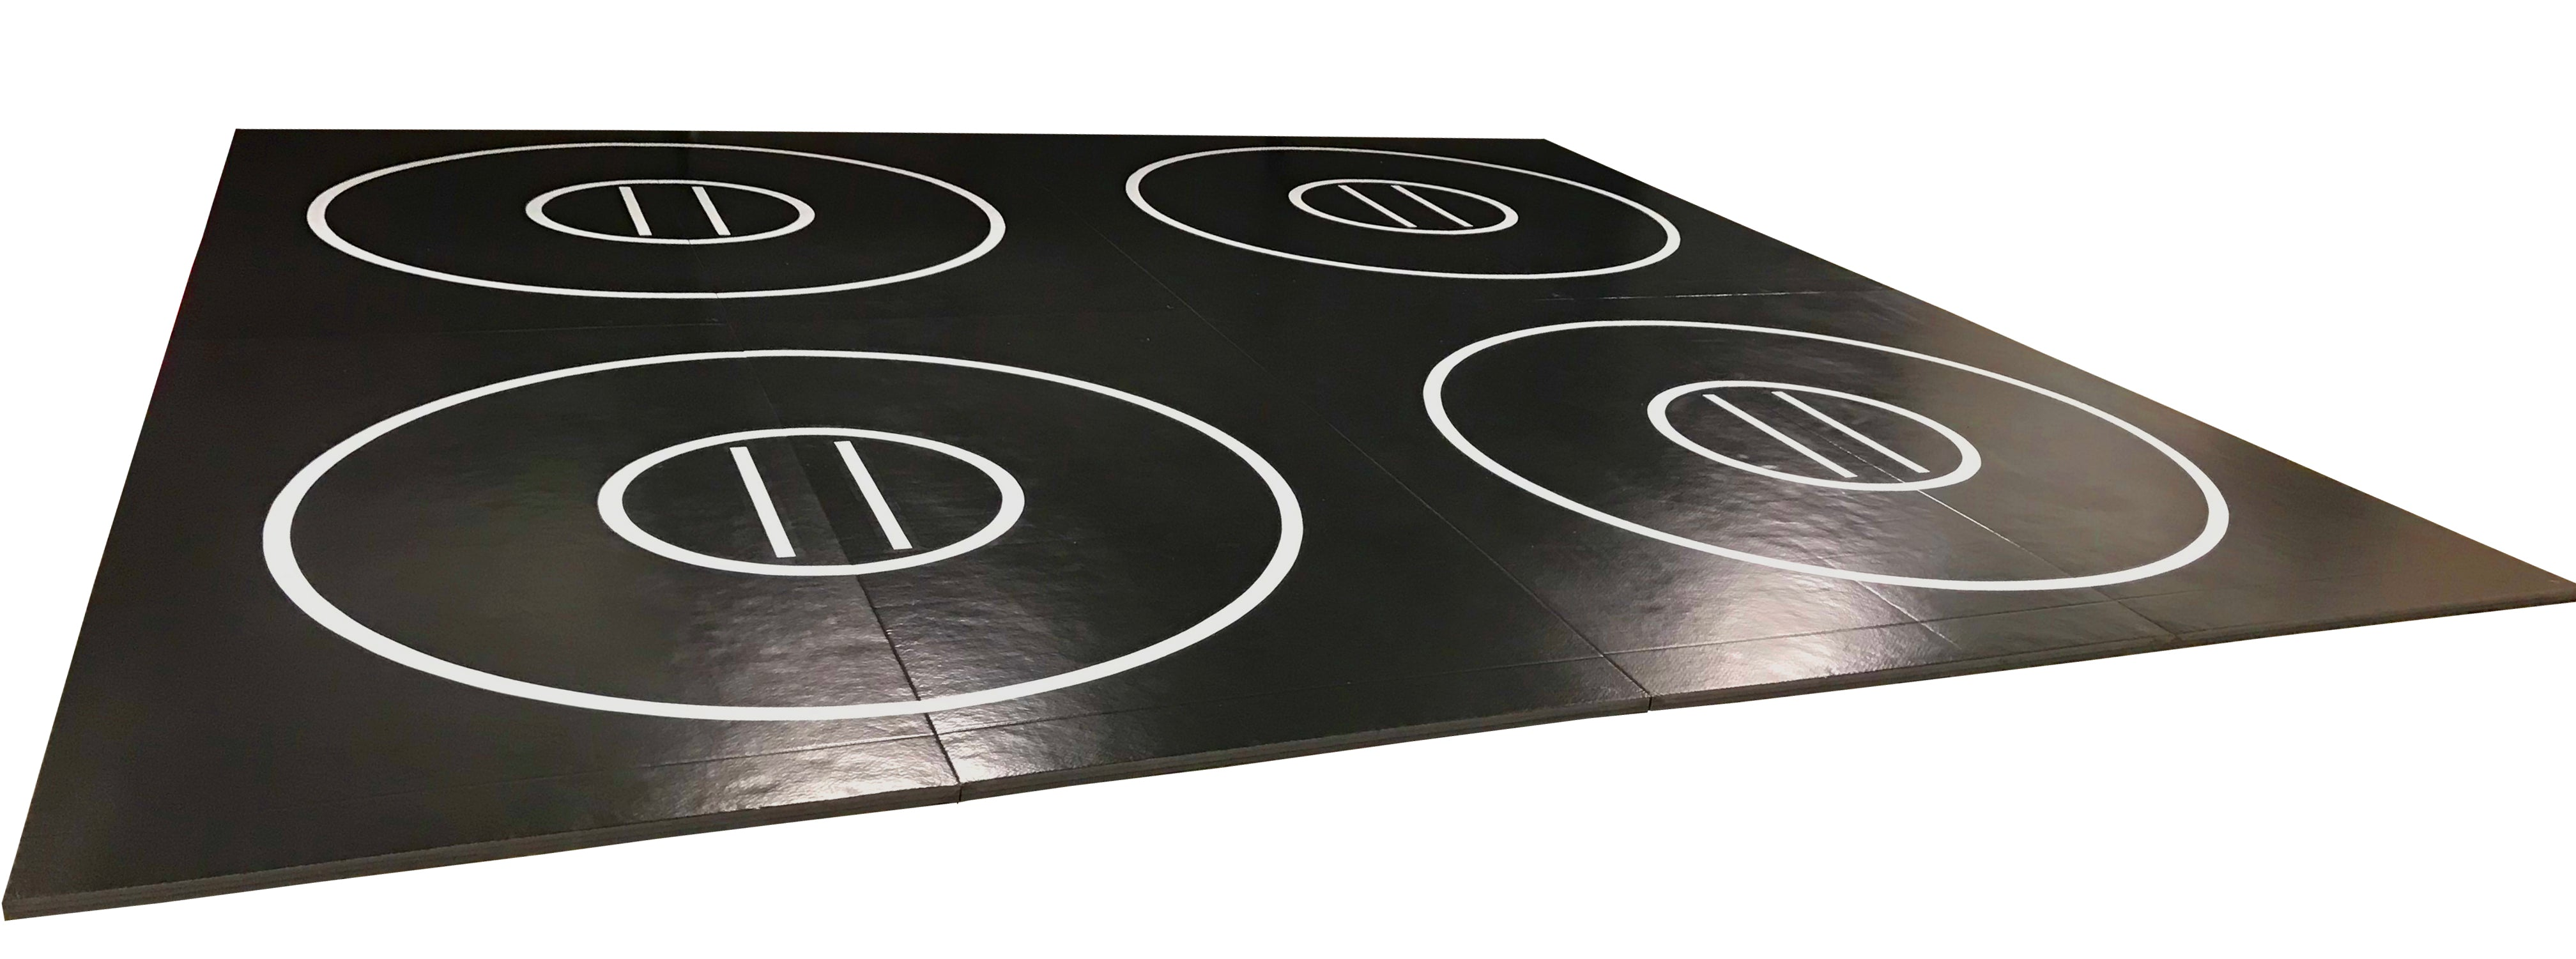 "Black and Red 8 section 20' x 20' x 1 3/8"" Roll-Up Wrestling Mat with Four Practice Circles"